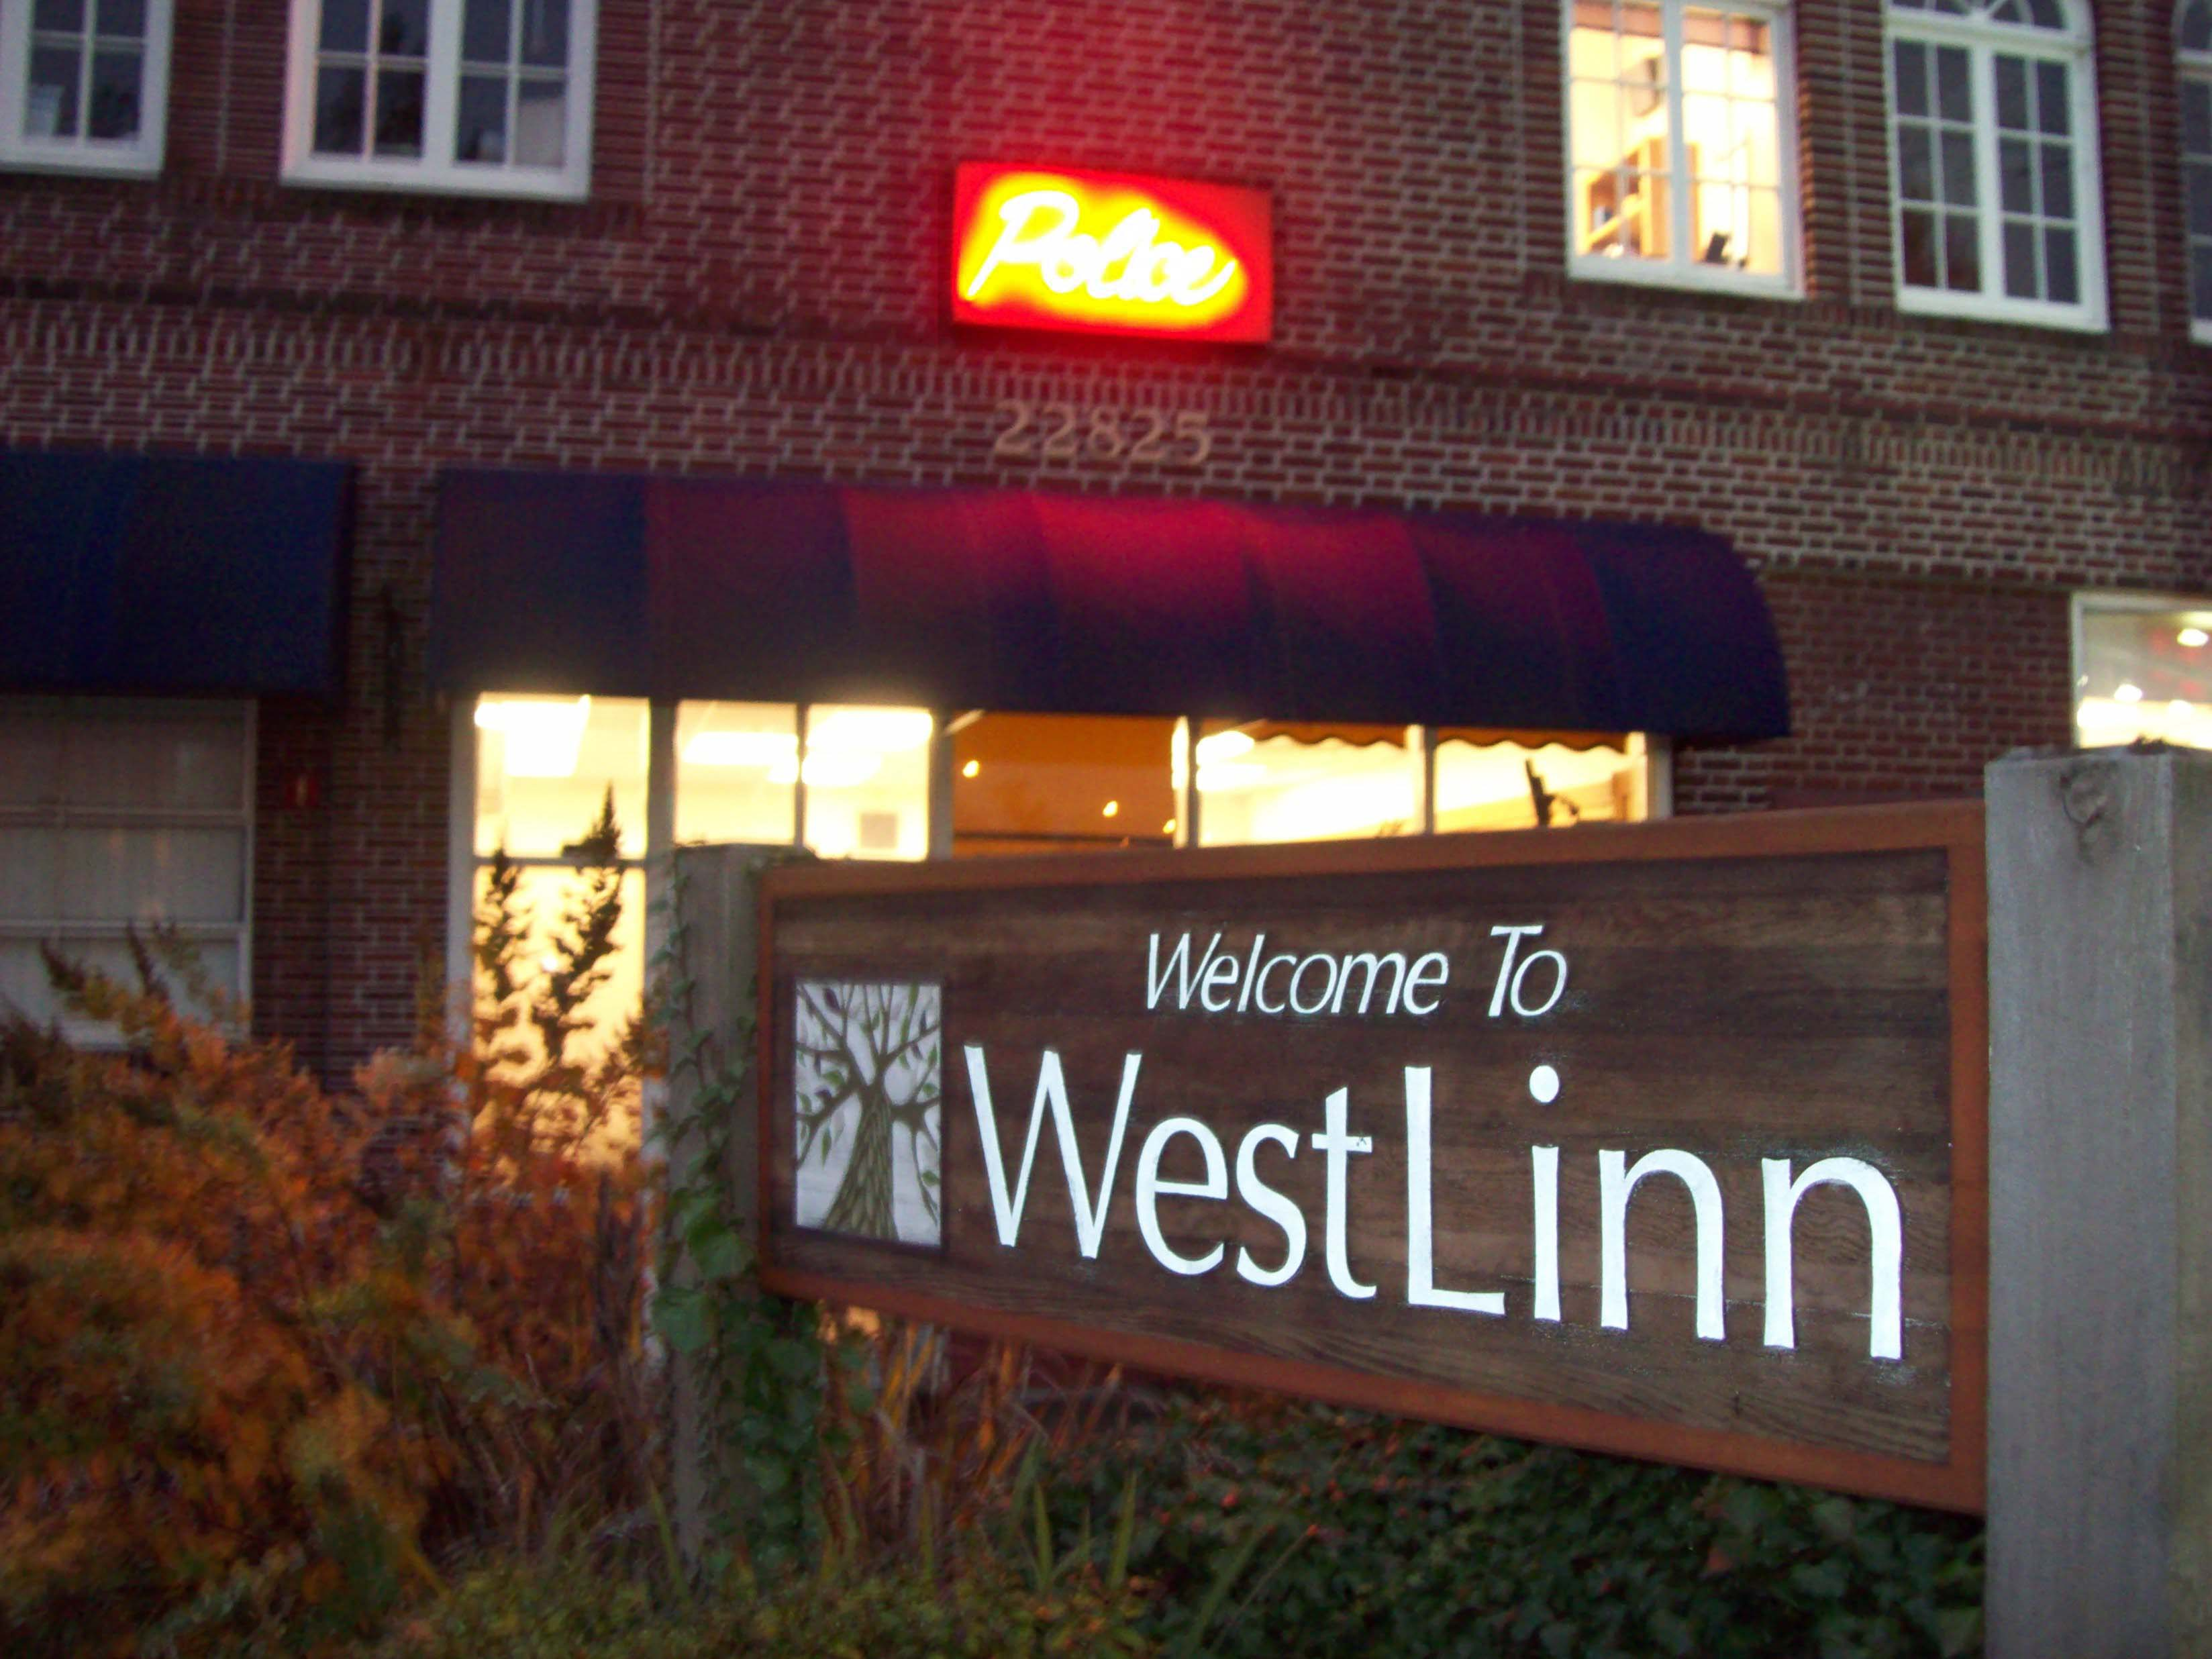 West Linn police station relocation is an upgrade